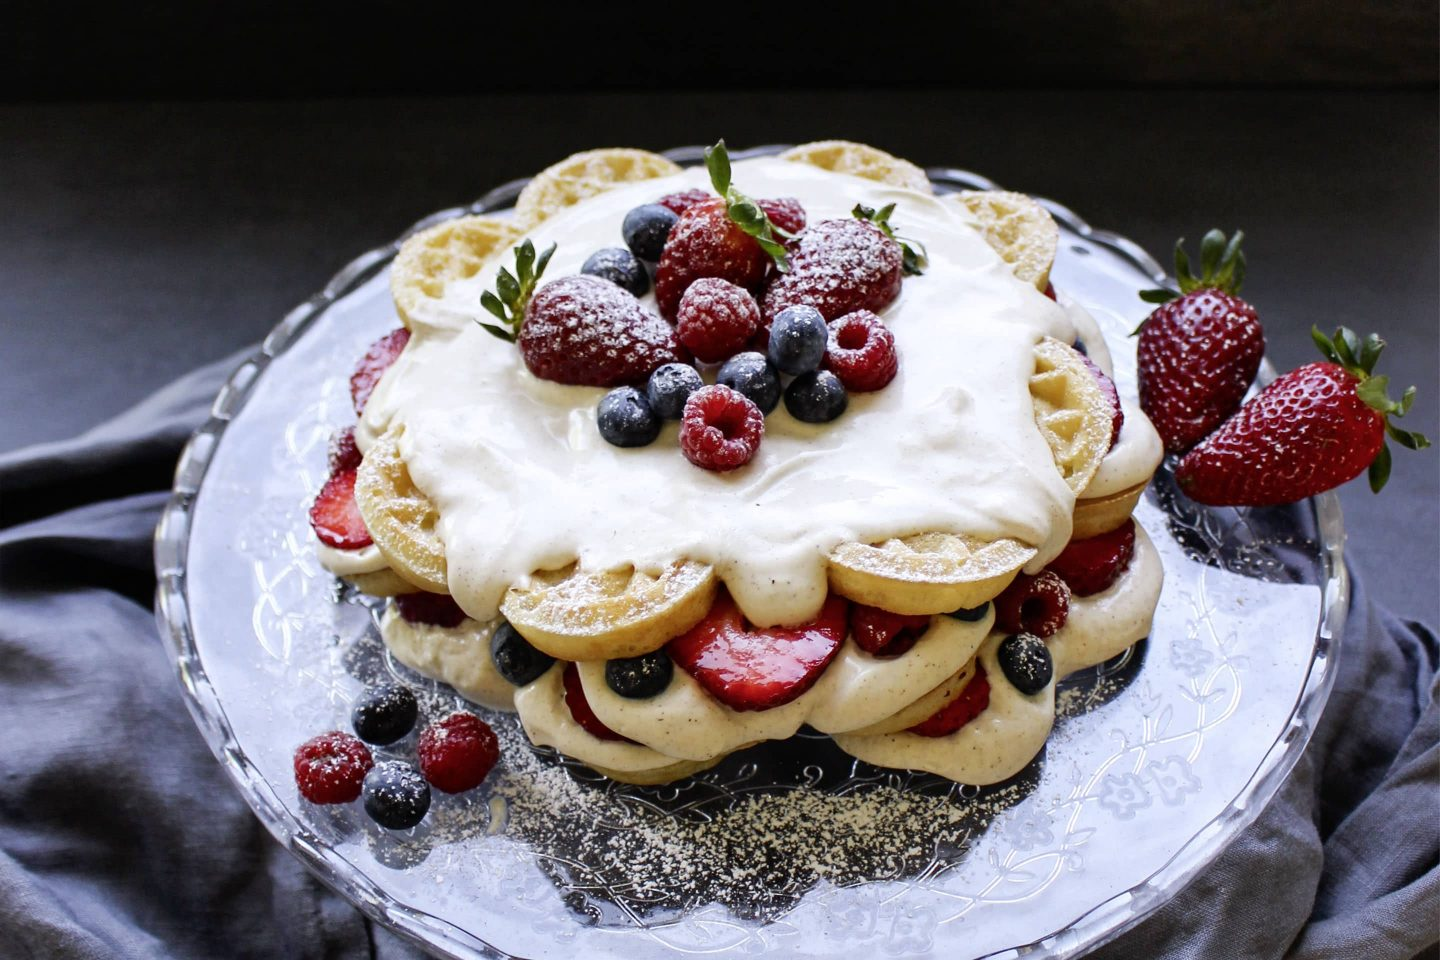 Wafflecake with fresh berries on a glass cake stand